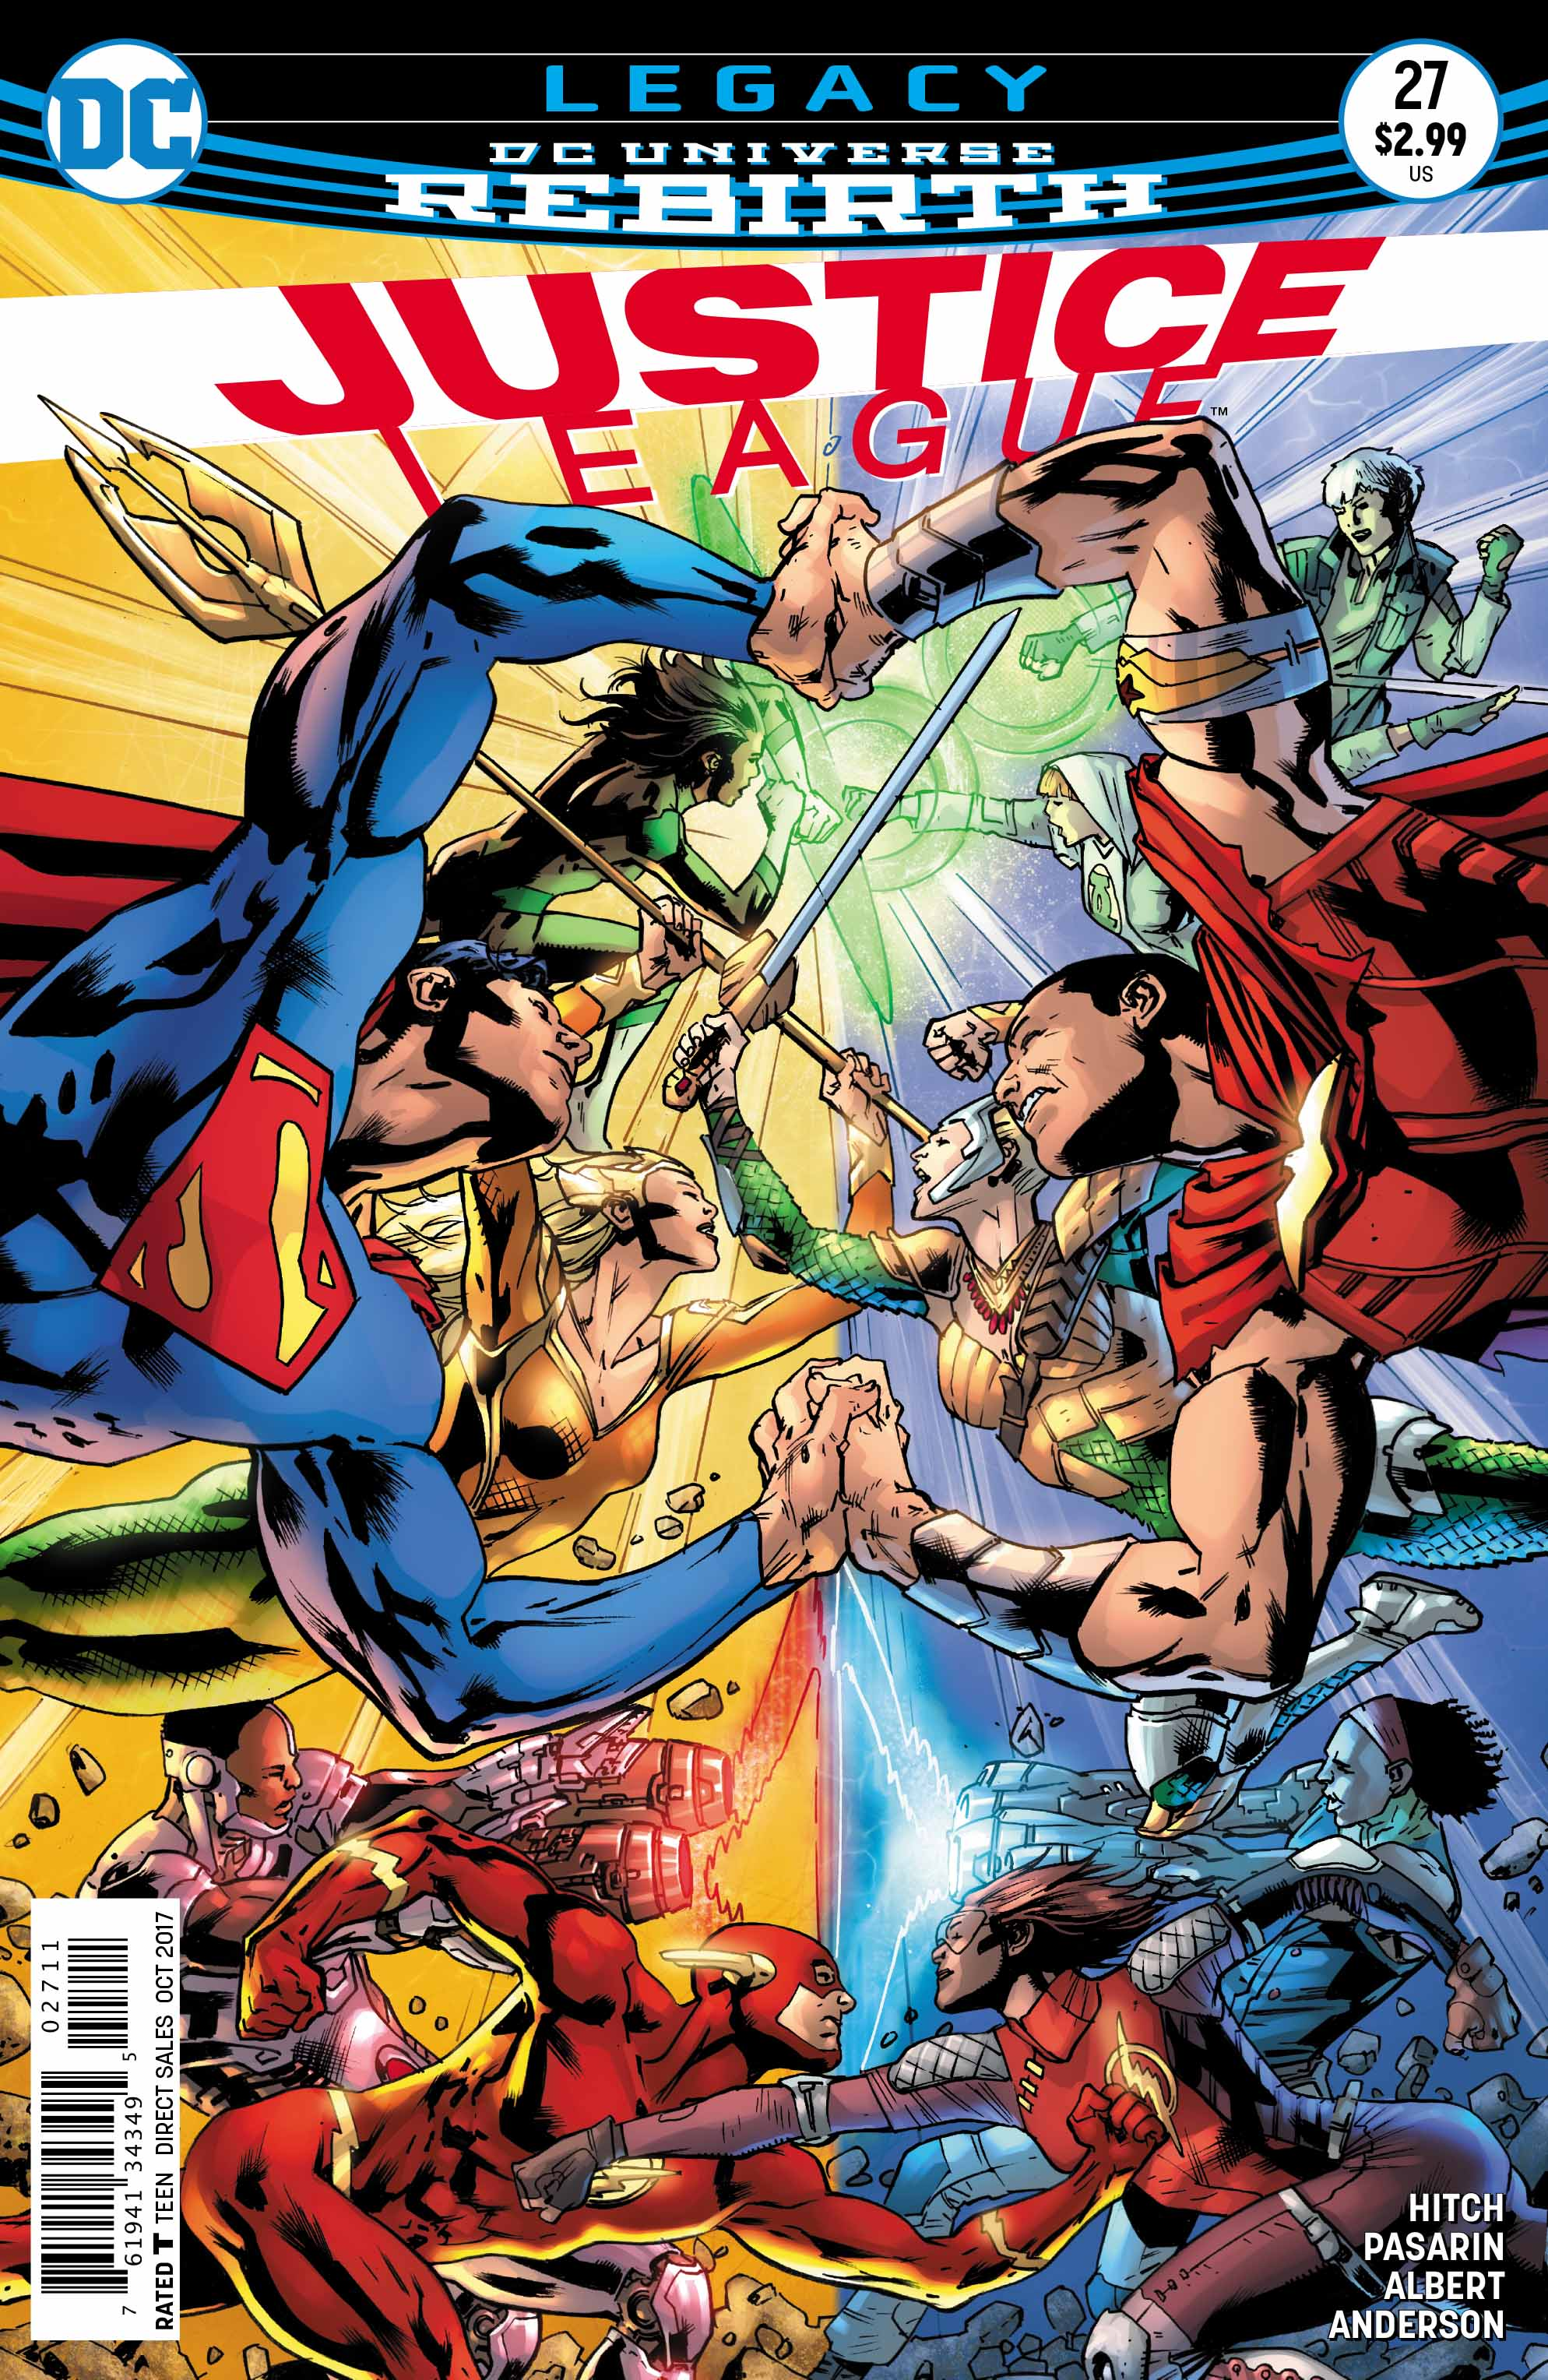 The cover to Justice League #27